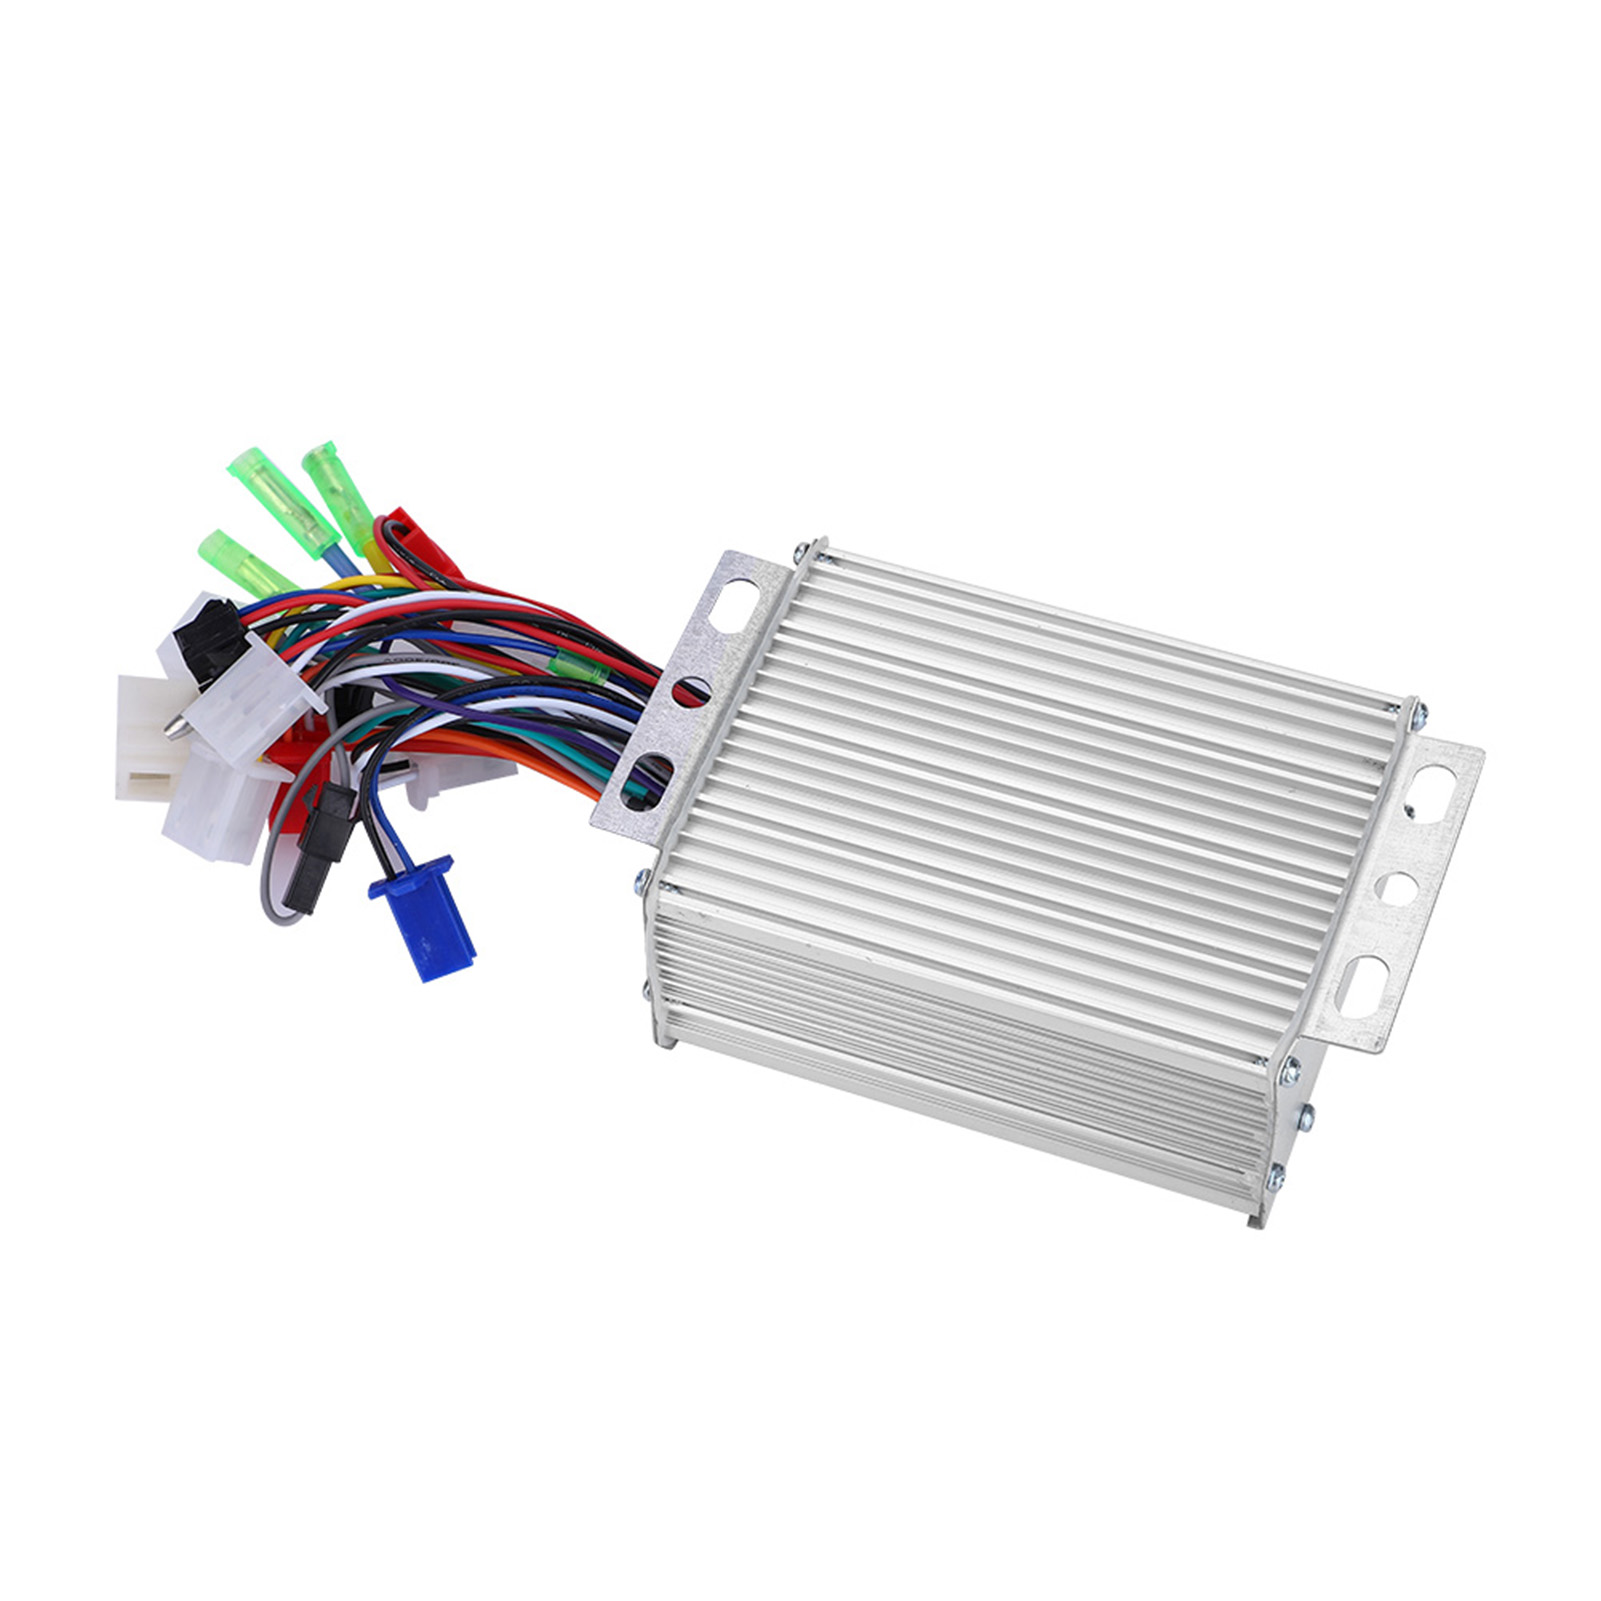 450W Motor Brushless Controller Box Accessory fr Electric Bicycle Scooter E-bike